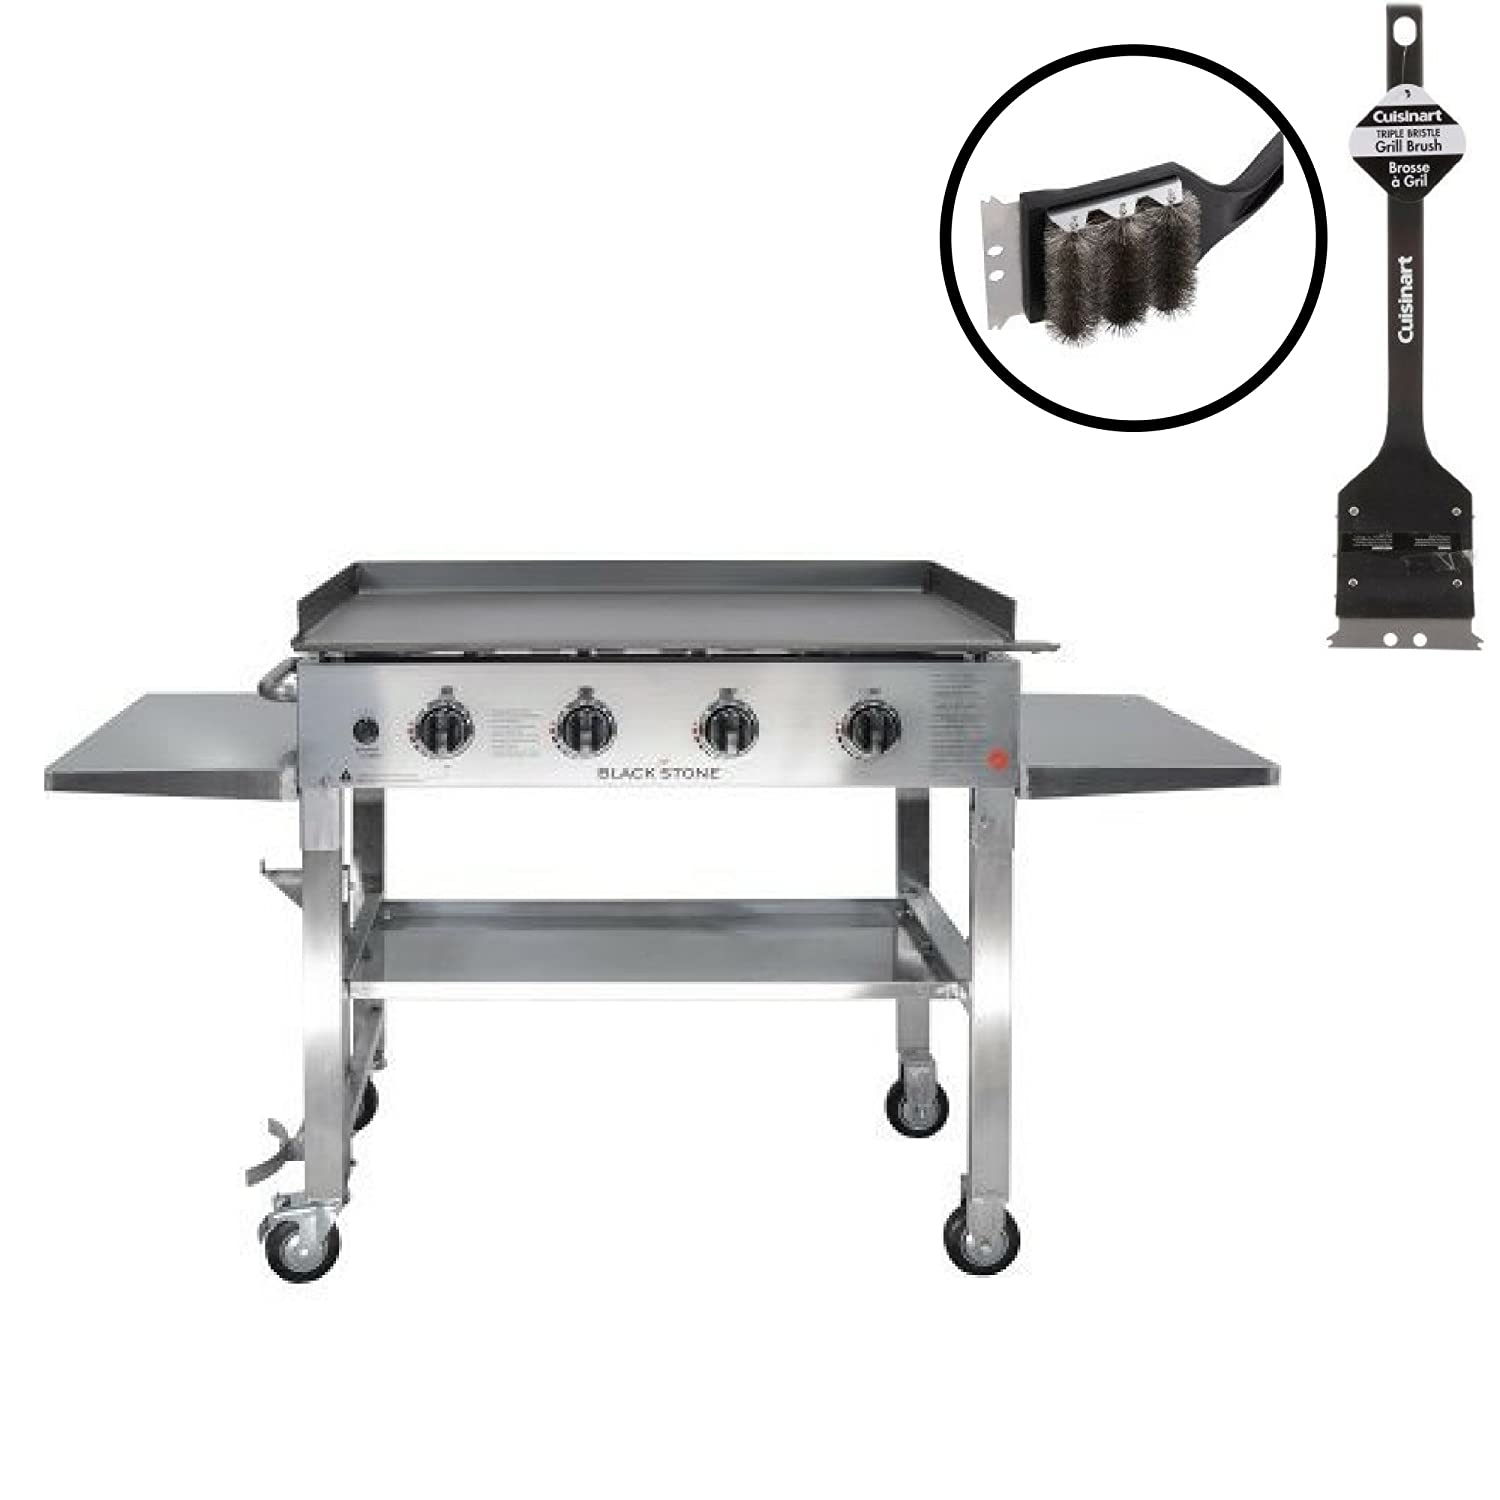 Blackstone Portable Gas Griddle - Propane Fueled